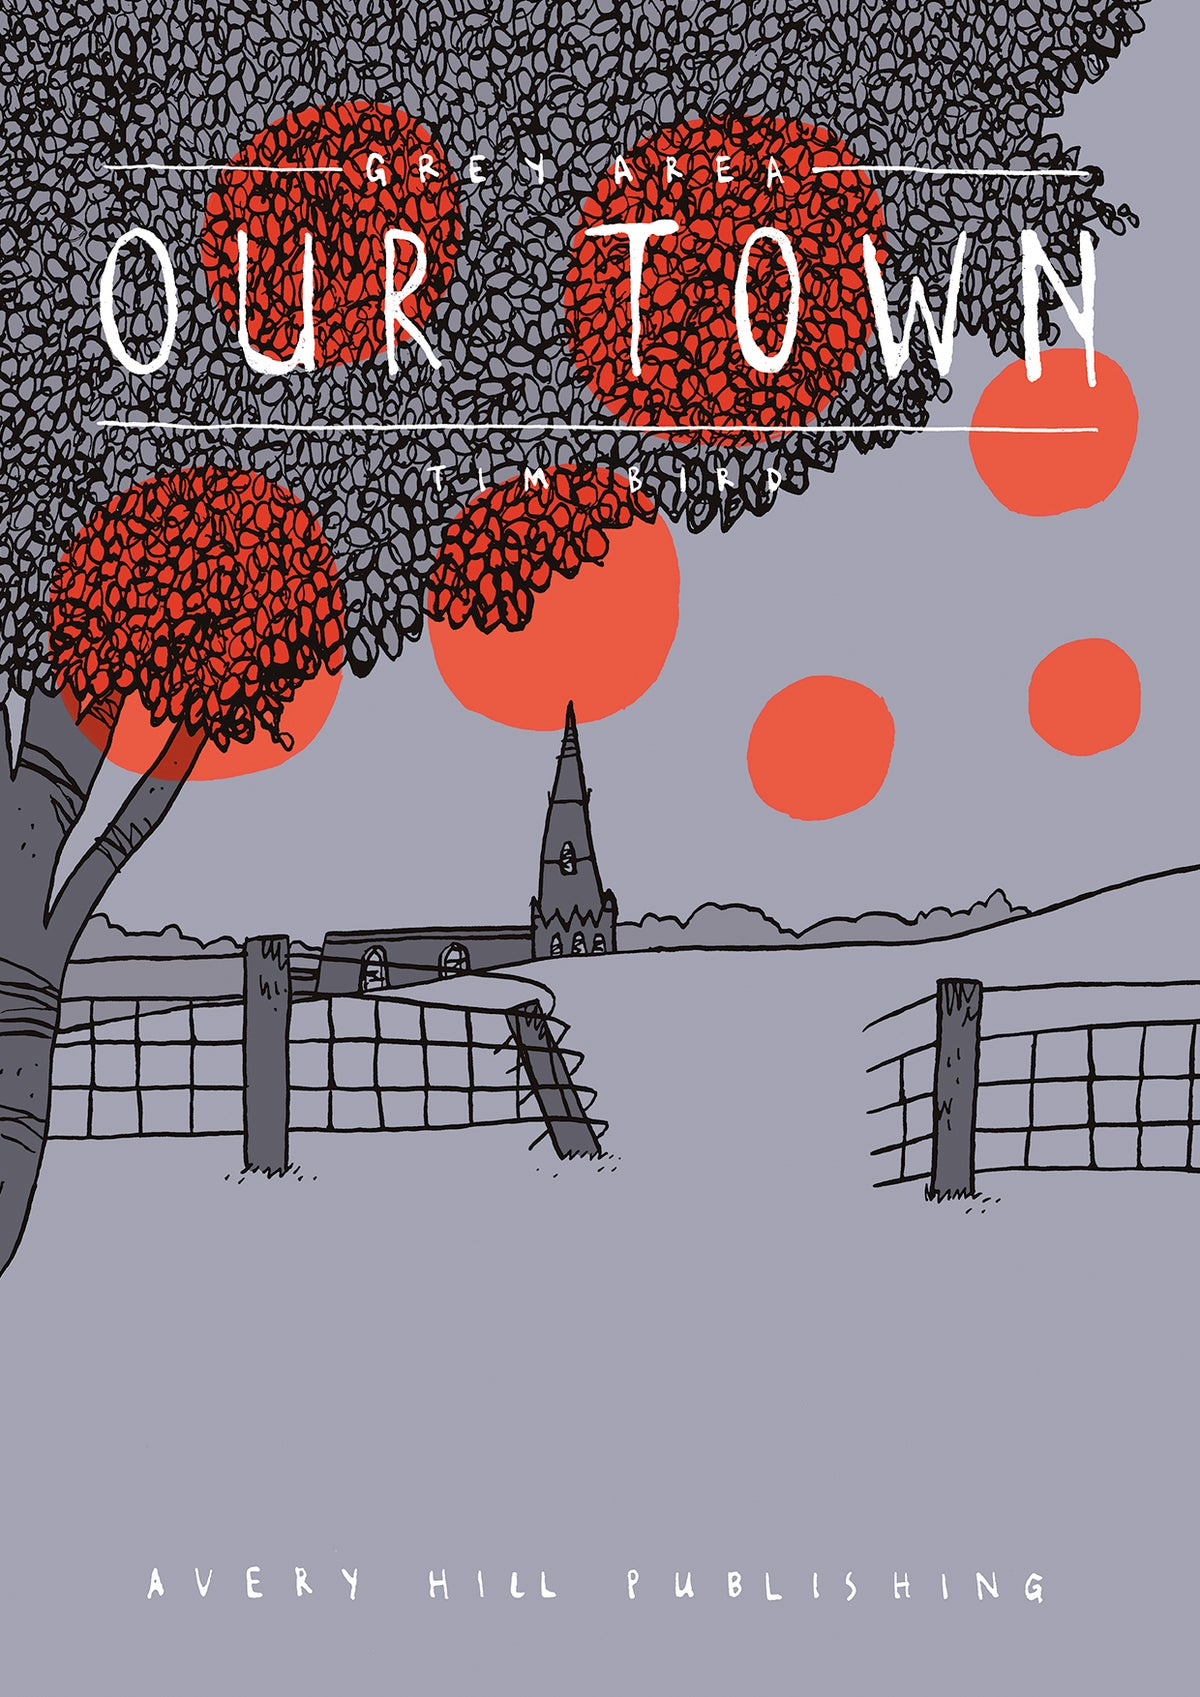 Grey Area: Our Town by Tim Bird